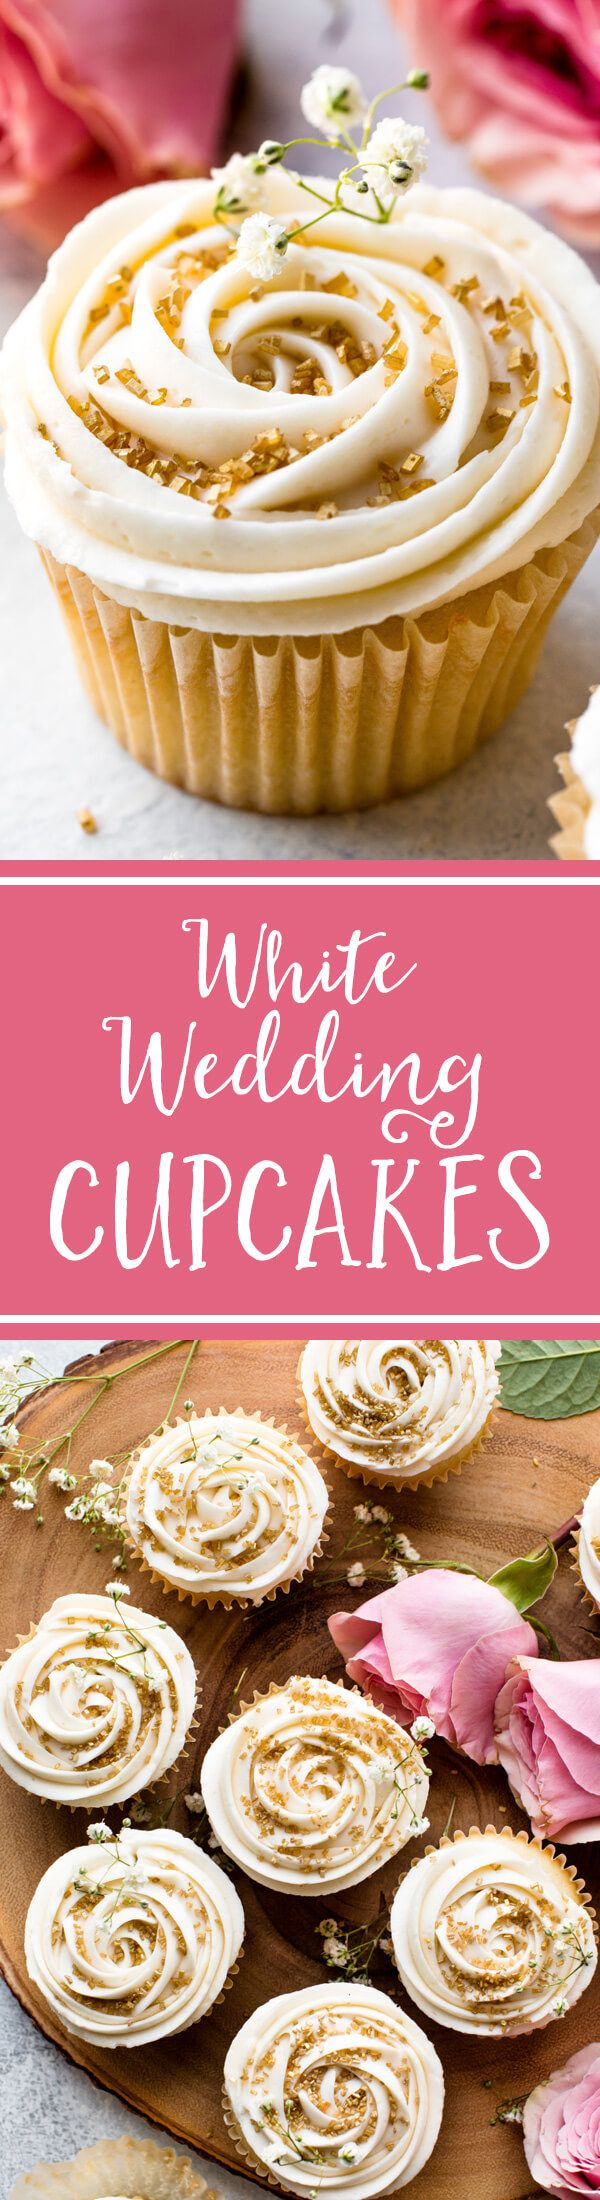 Soft and fluffy vanilla wedding cupcakes topped